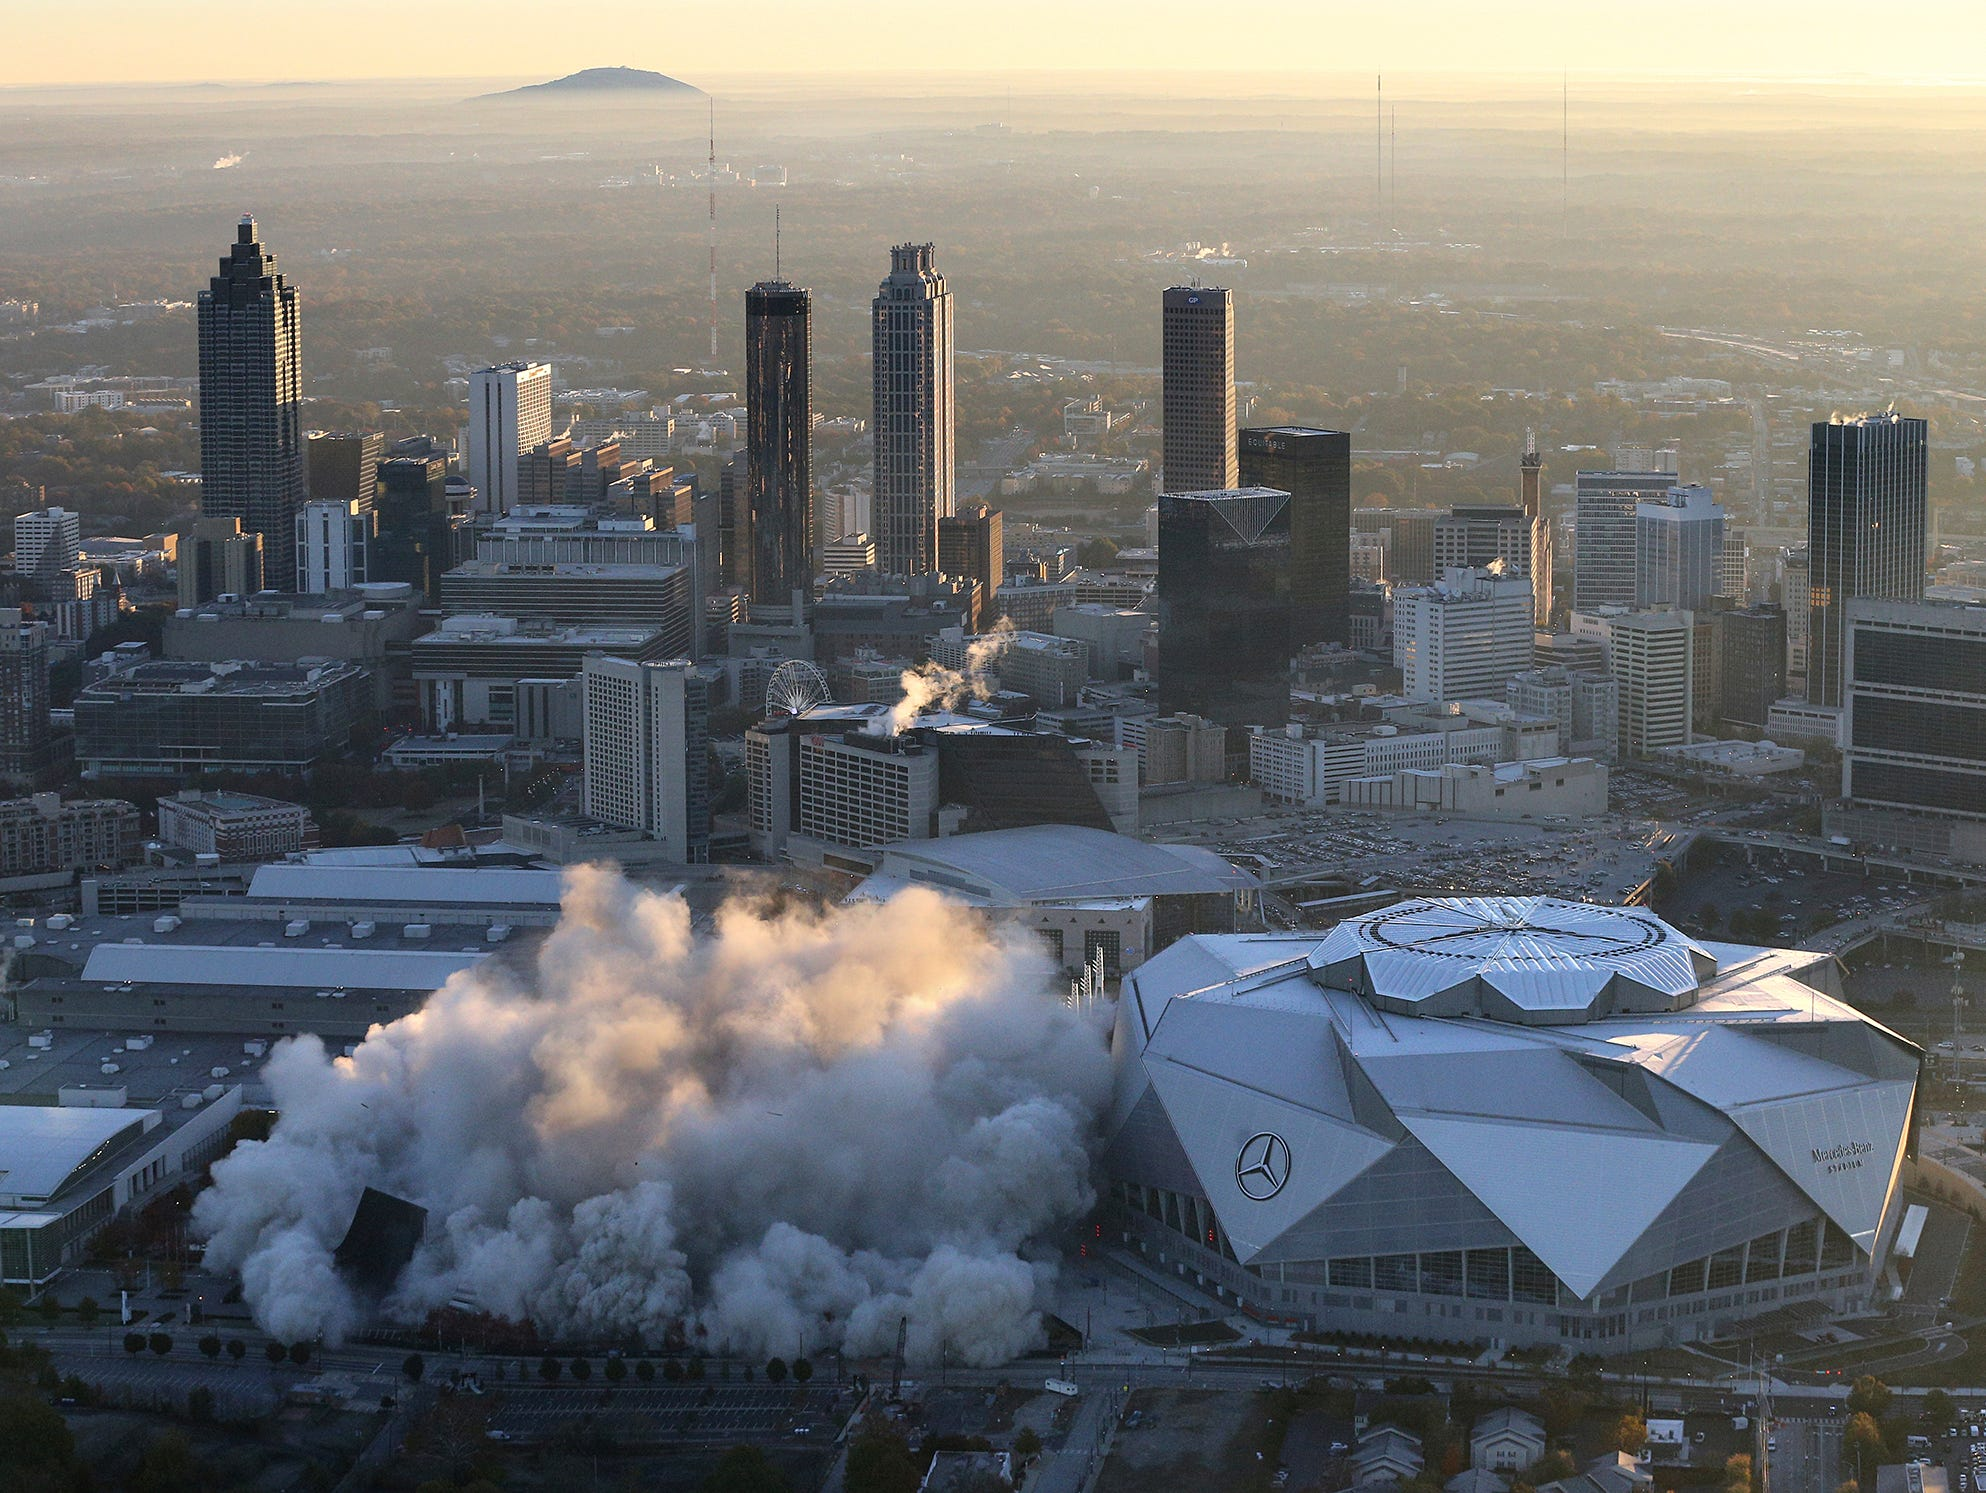 bus photobombs weather channel u0026 39 s view of georgia dome implosion